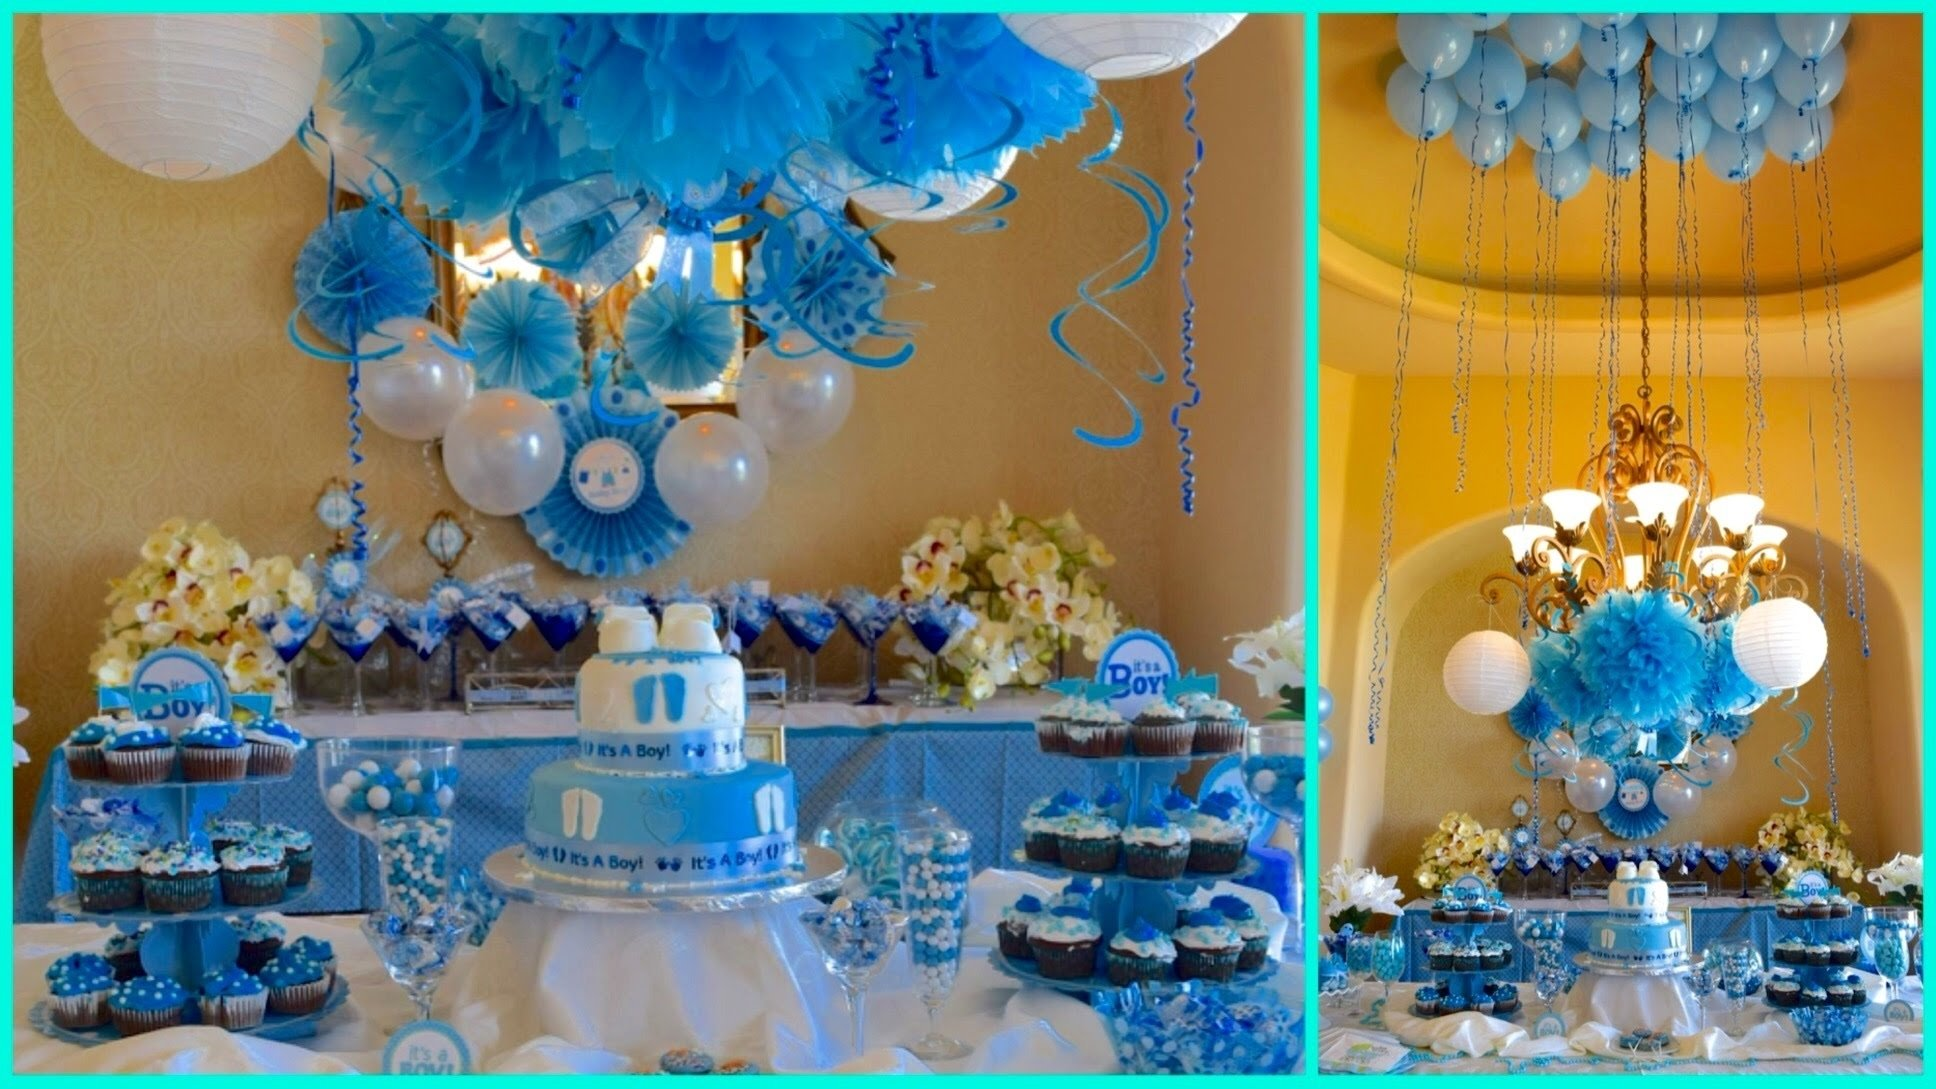 10 Ideal Ideas For A Baby Boy Shower baby shower ideas for boy blue theme youtube 32 2021